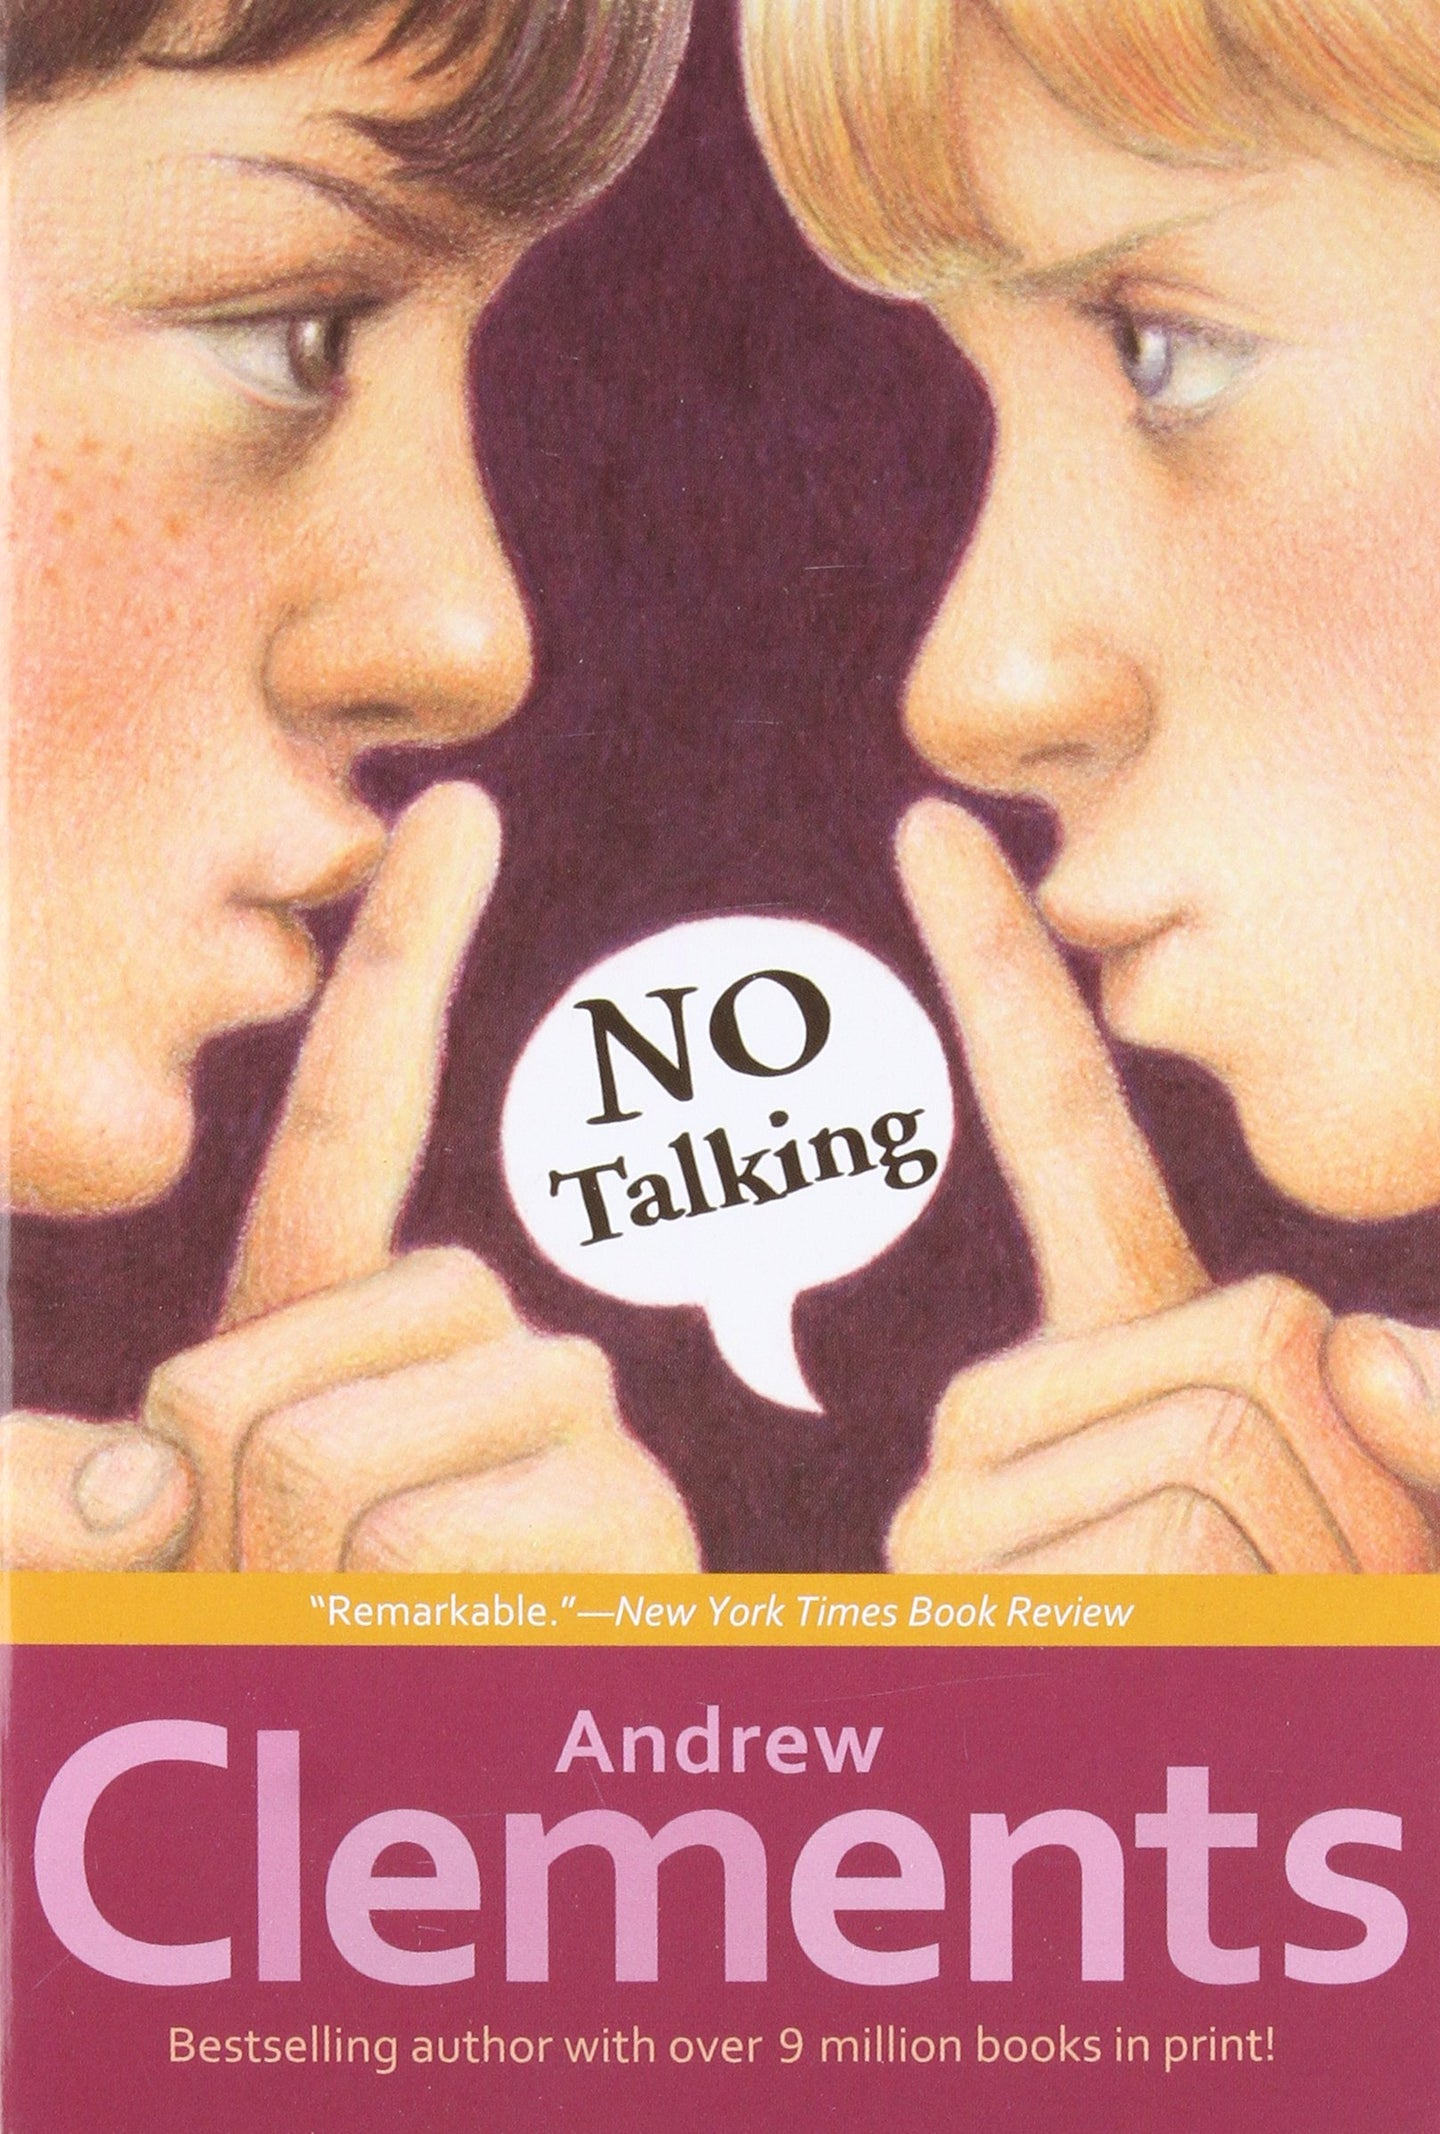 No Talking - Andrew Clements (Used) - Little Green Schoolhouse Books